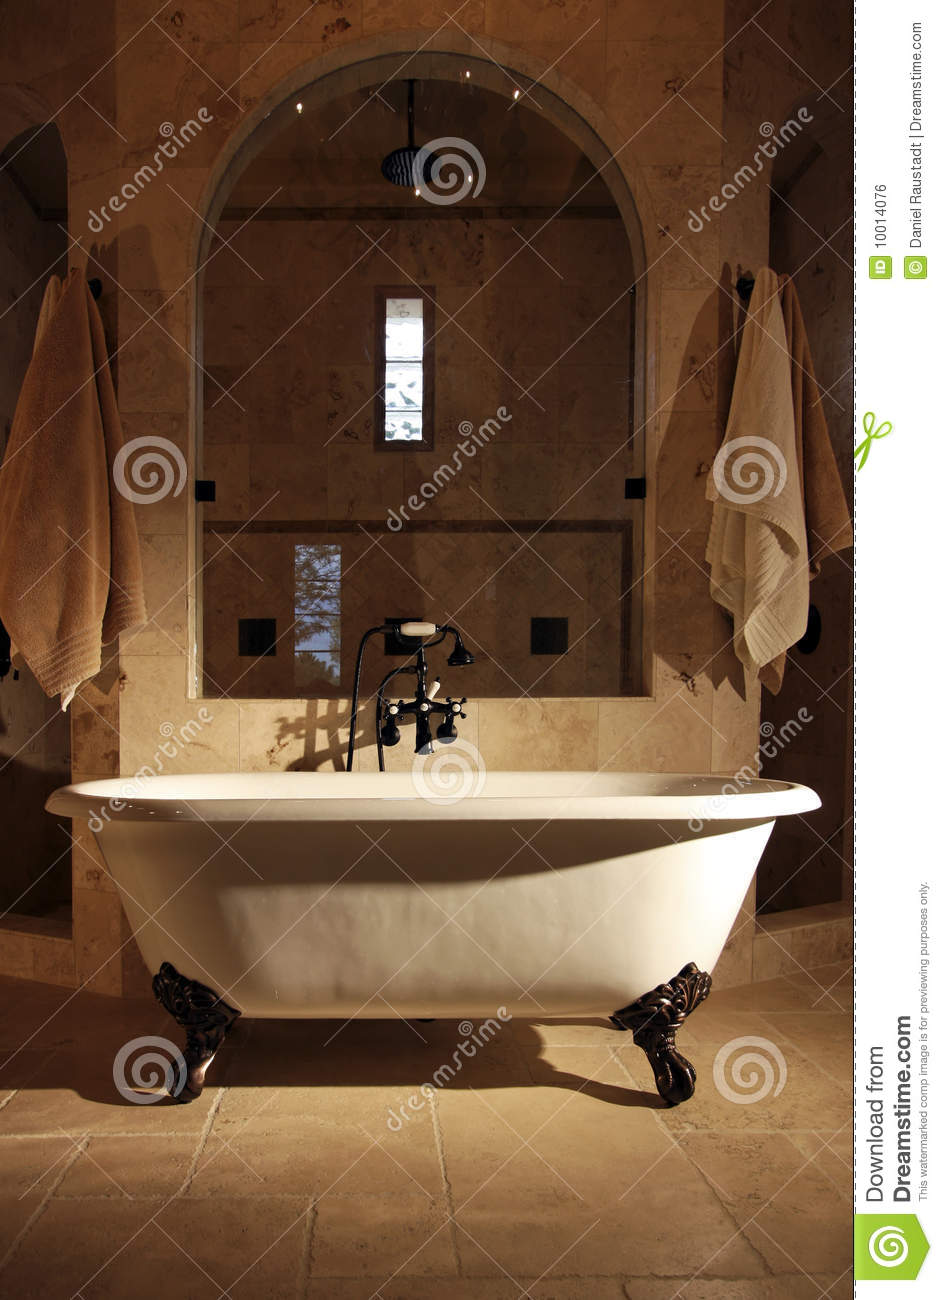 Retro Claw Foot Bathroom Tub Royalty Free Stock Image